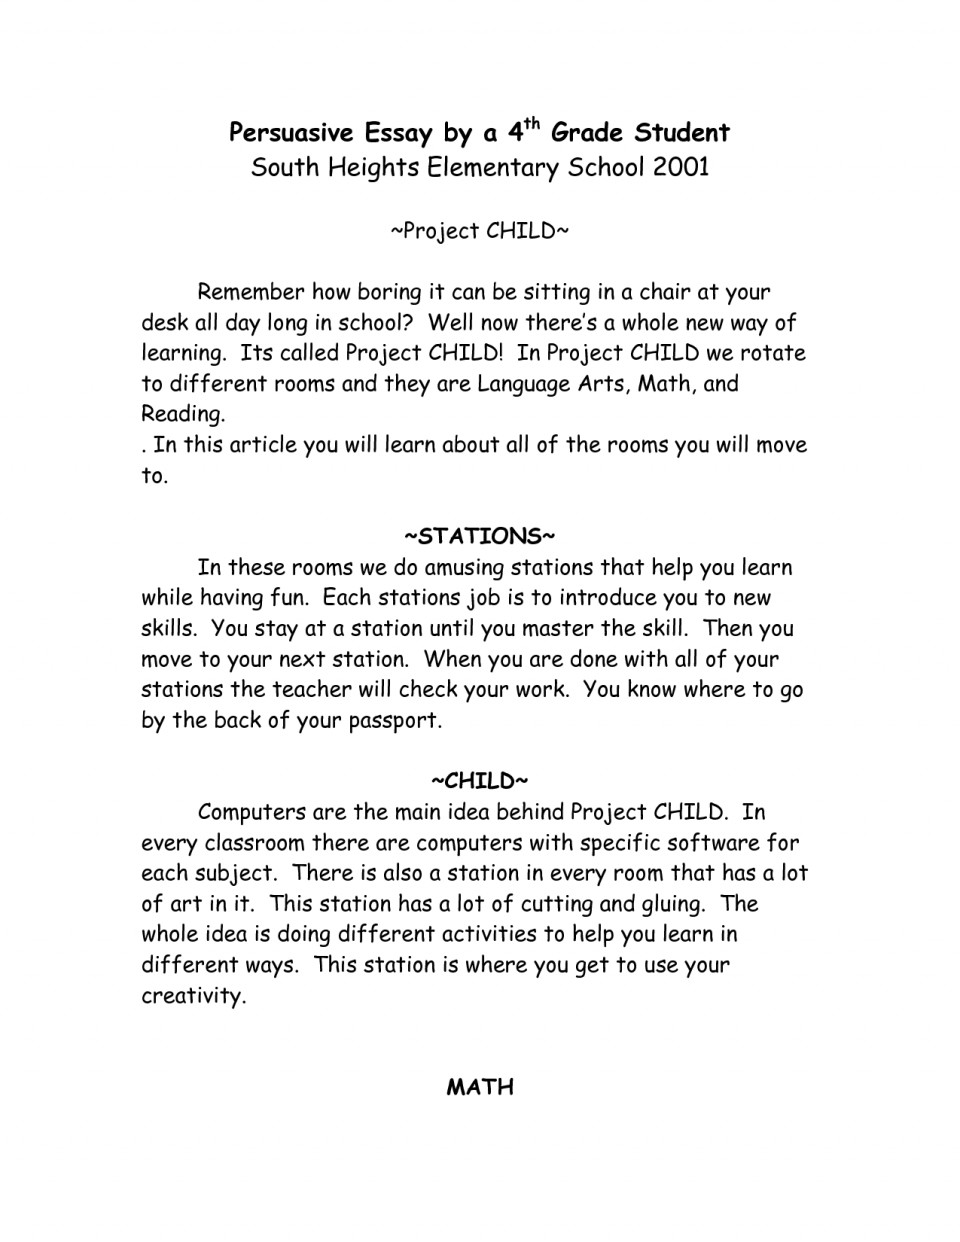 014 How To Start An Essay 2nmmxqusgx Amazing With A Hook Quote Analysis On Book 960